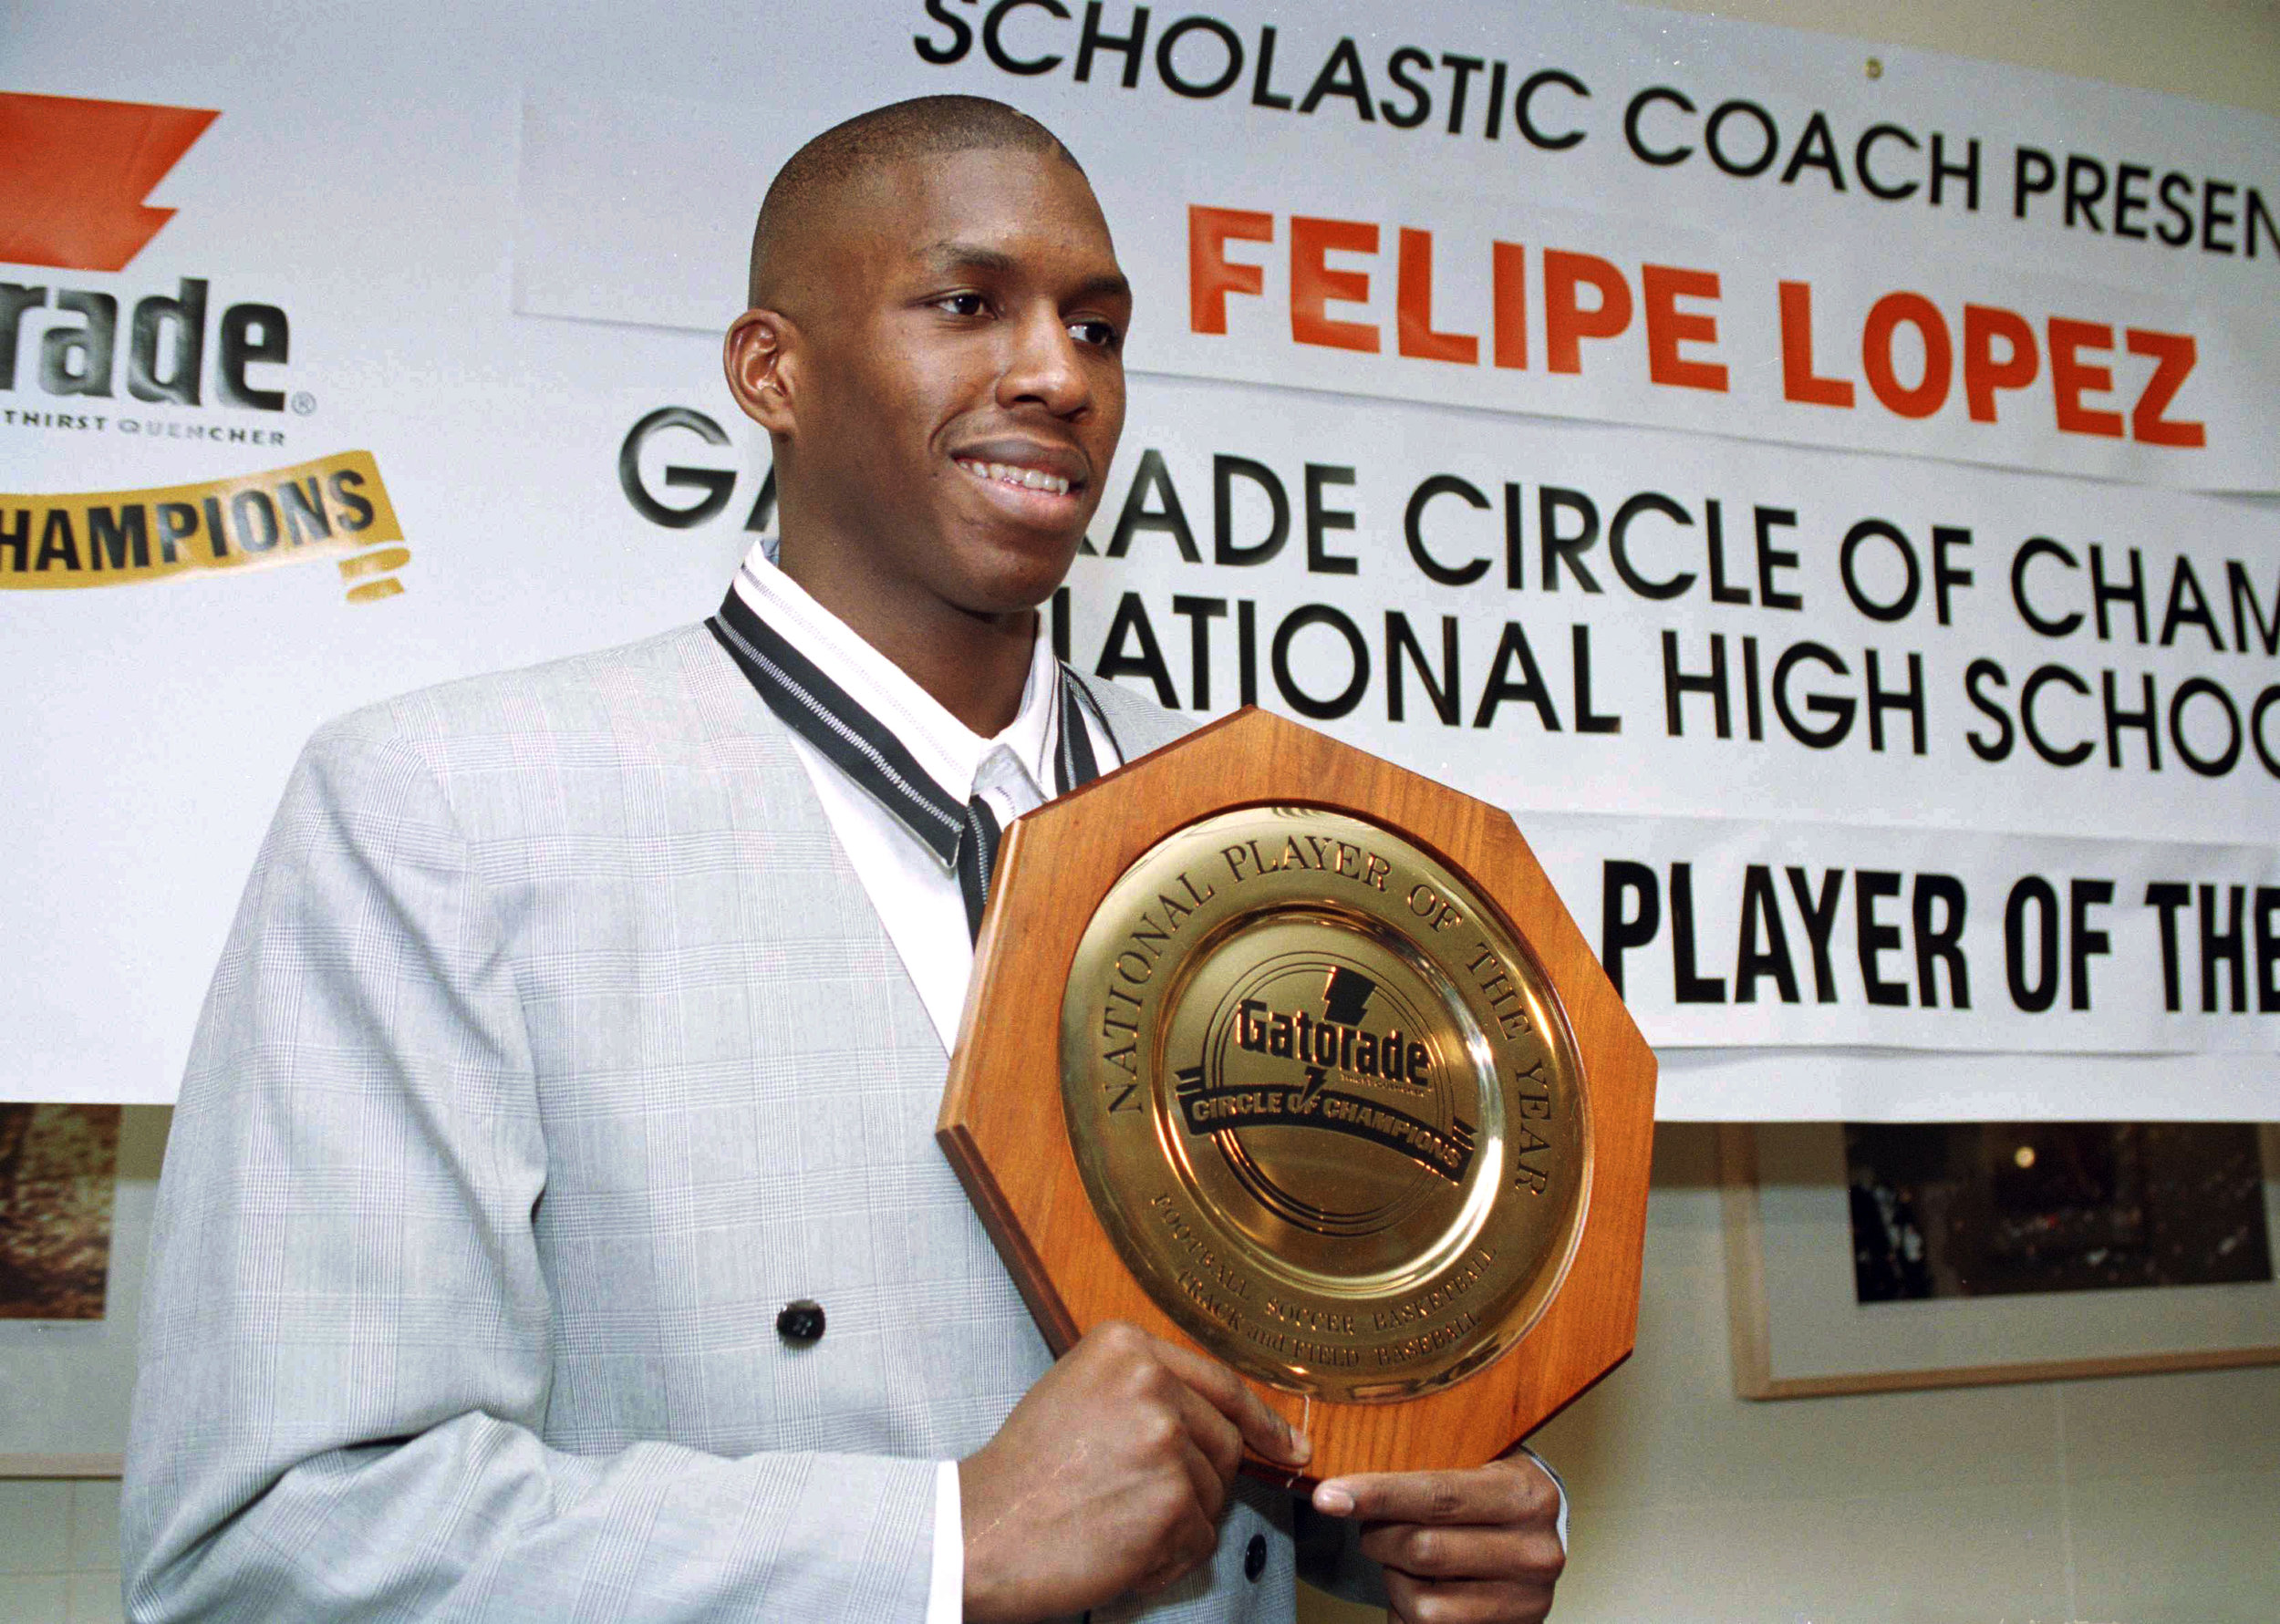 "In this March 15, 1994 file photo Felipe Lopez, a senior at Rice High School in the Bronx, is named National High School Basketball Player of the Year. Lopez, once the top-rated player in the nation in high school, went onto a four-year career at St. John's University, but could never live up to the lofty expectations in college or the NBA. His story is told in the new film ""The Dominican Dream."" (AP Photo/Marty Lederhandler, File)."